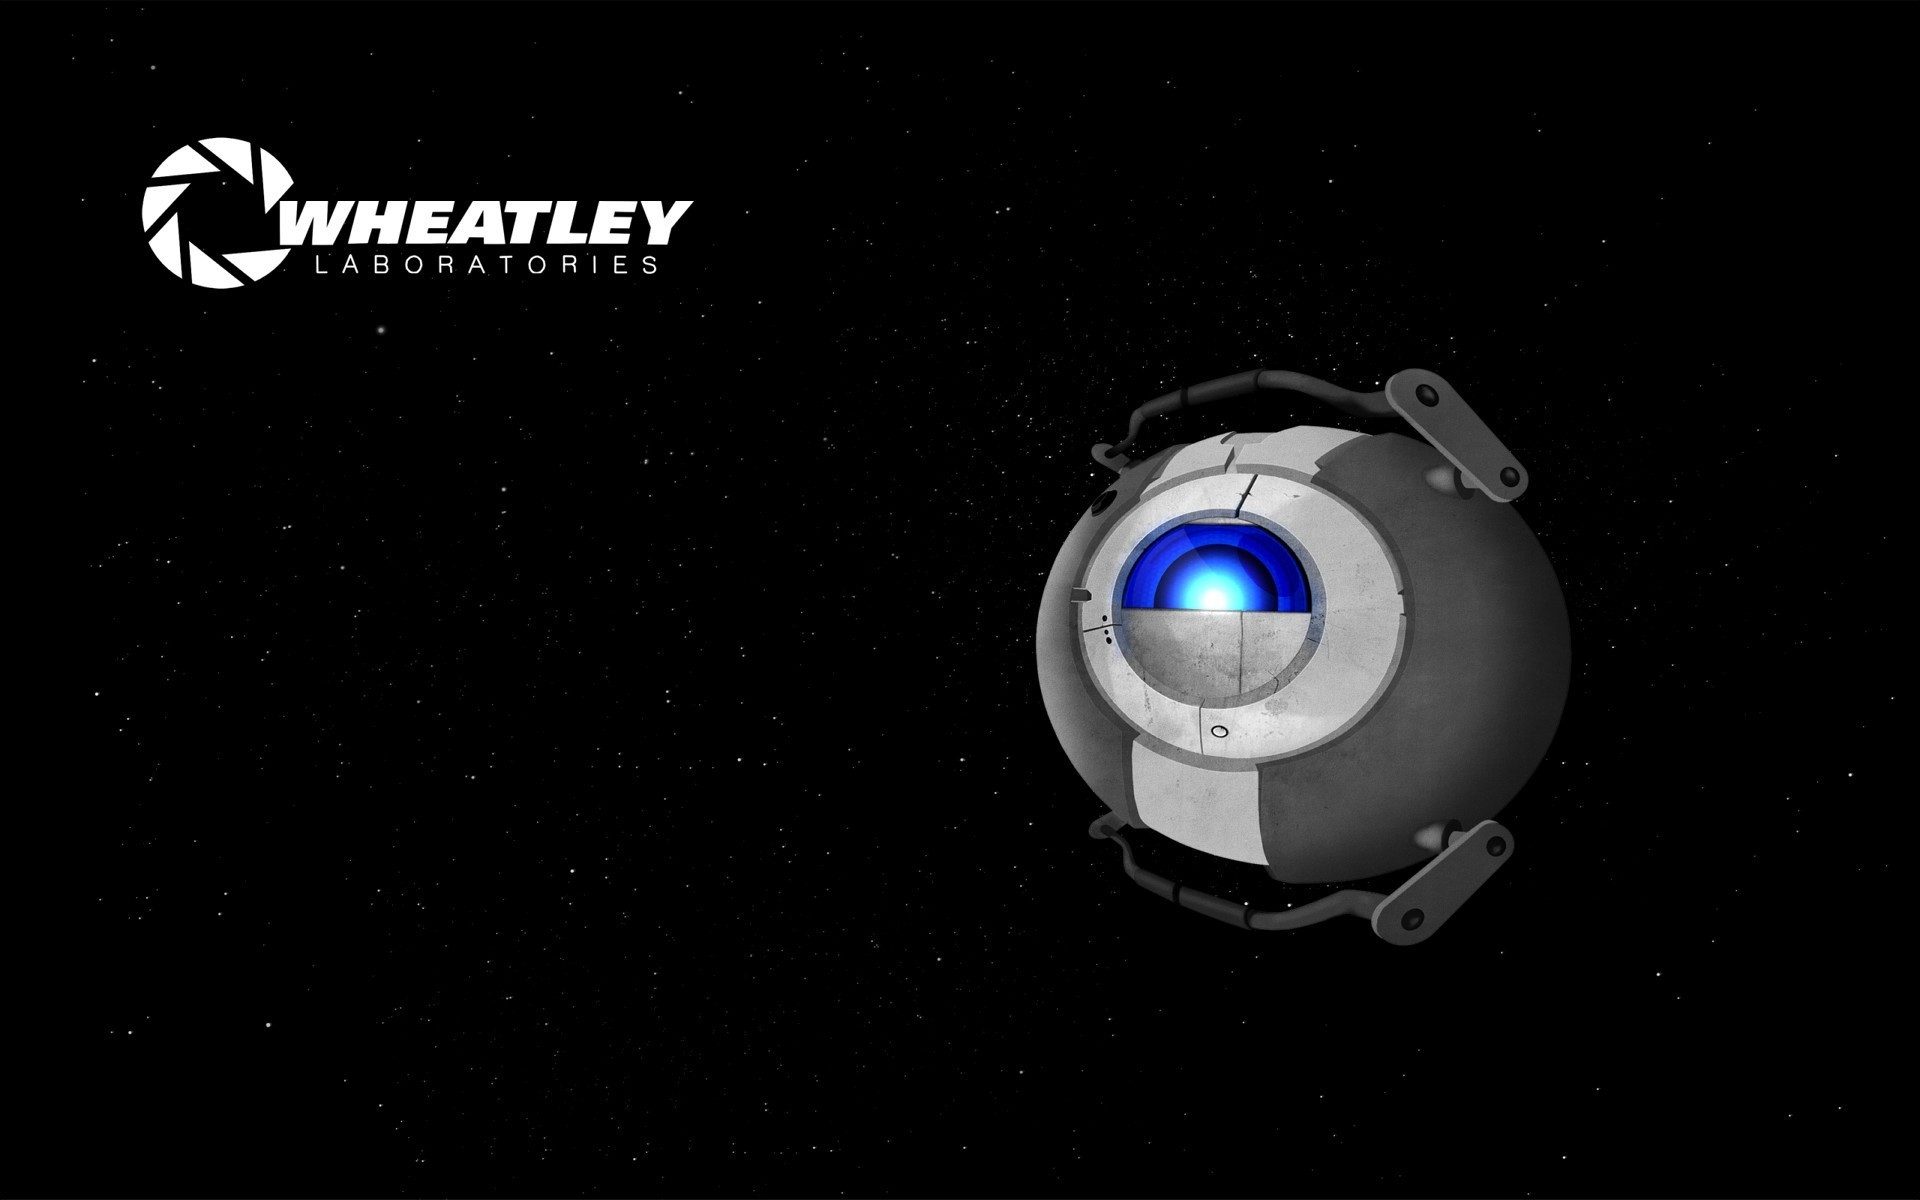 portal 2 wheatley science fiction space wallpaper